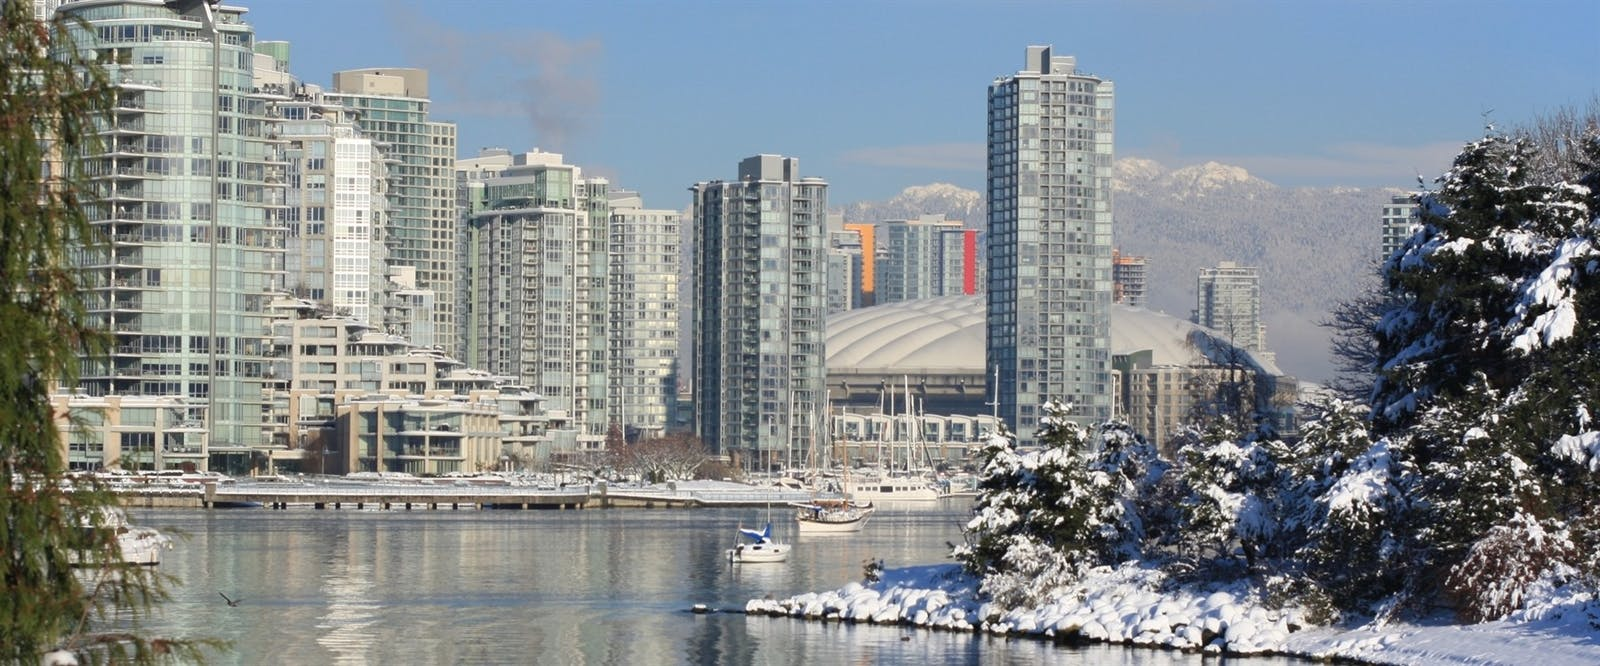 a wintry vancouver